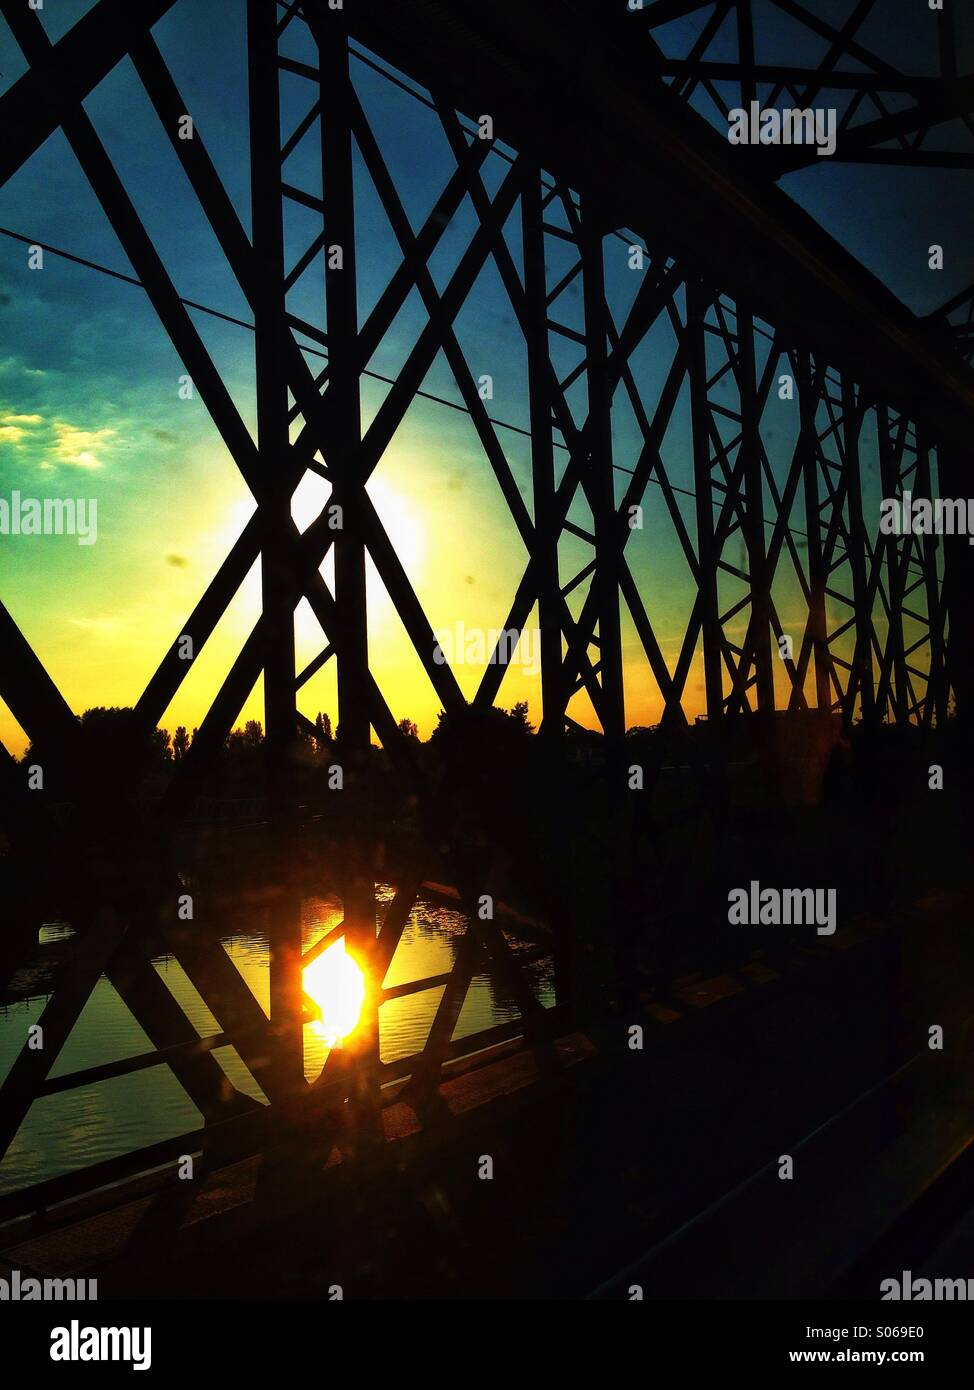 Train bridge sunset - Stock Image